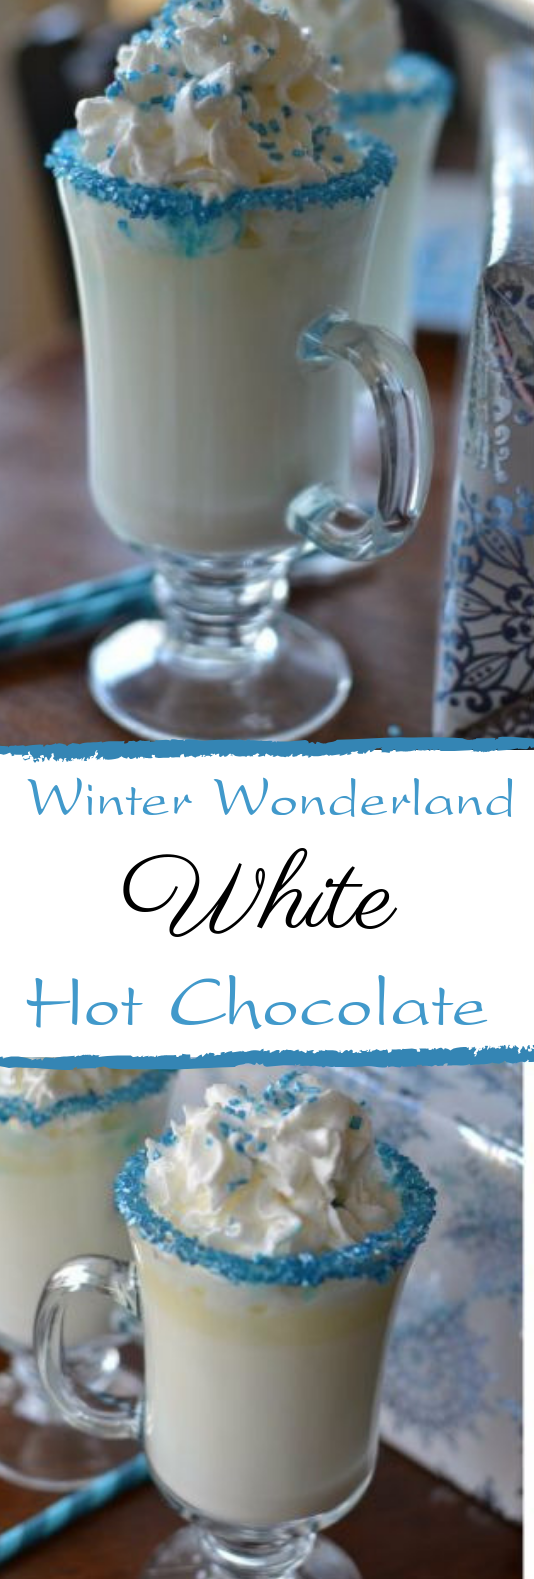 Winter Wonderland White Hot Chocolate #warm #drinks